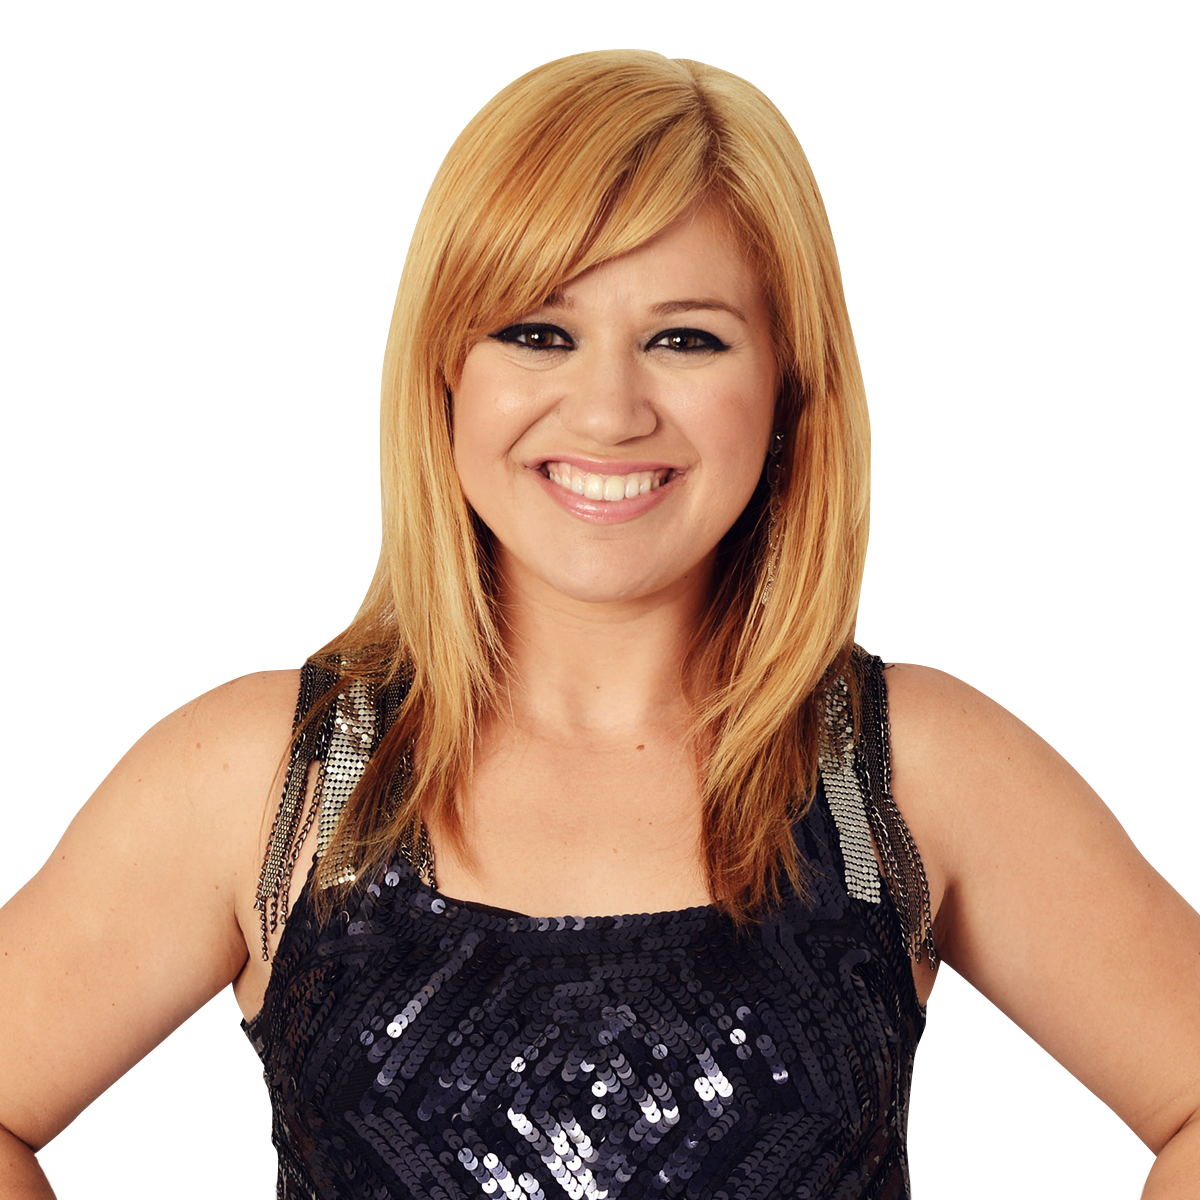 Kelly Clarkson Free PNG Image.